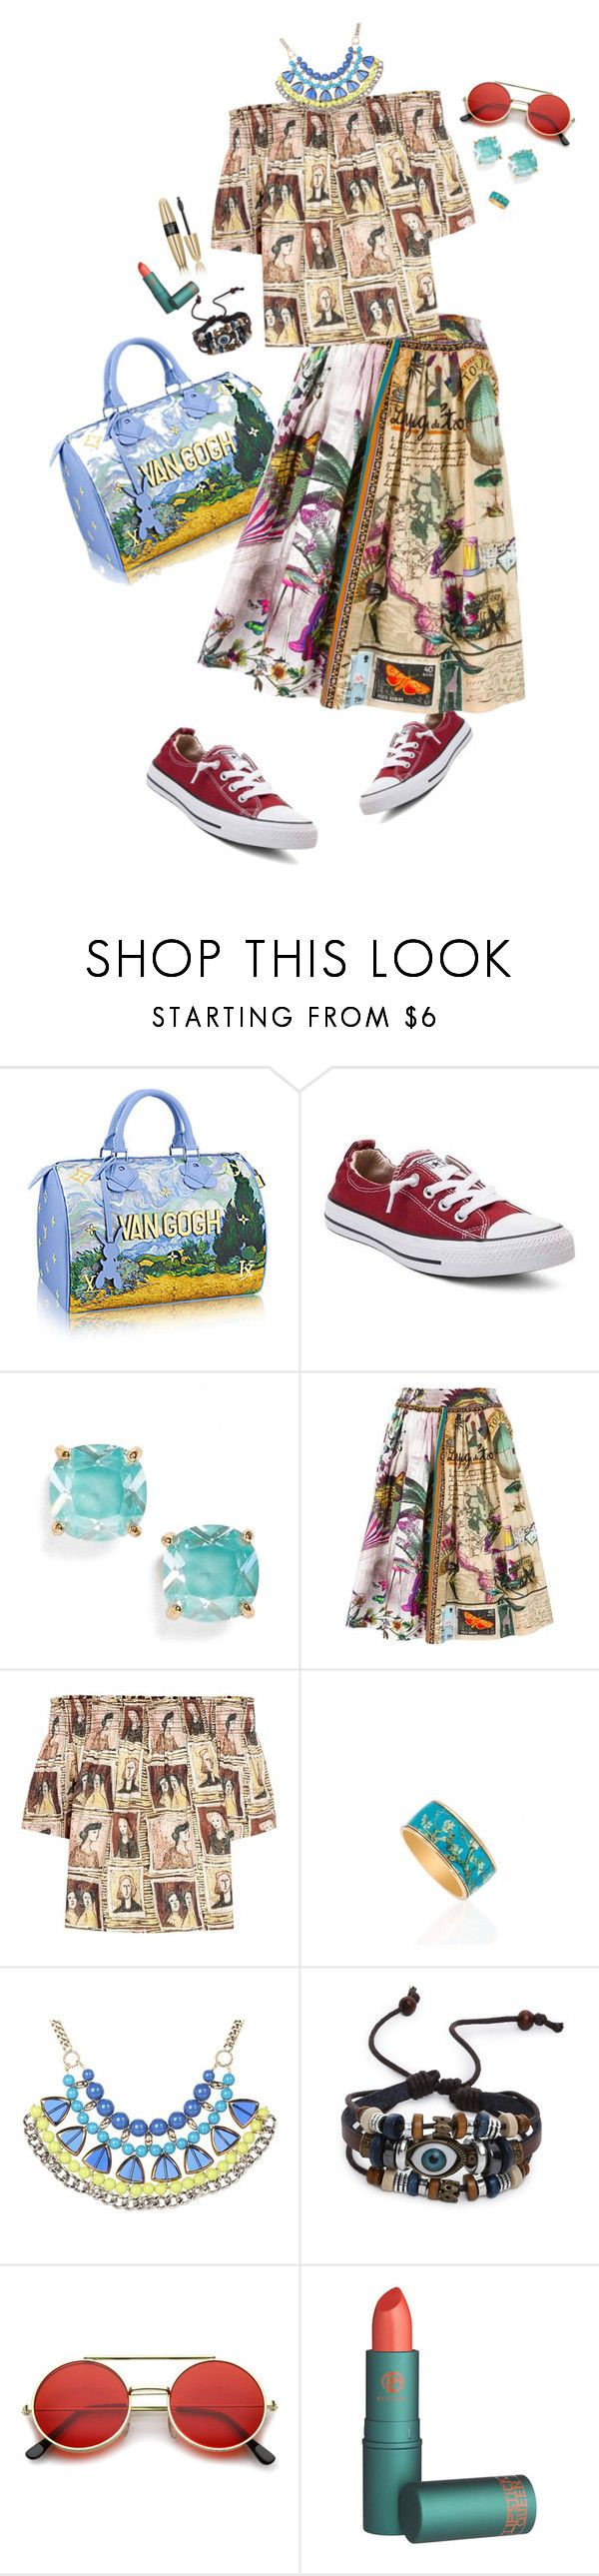 """""""Oops!"""" by girlyskullsam ❤ liked on Polyvore featuring Converse, Kate Spade, Etro, Burberry, Victoria's Secret, Jessica Simpson and ZeroUV"""